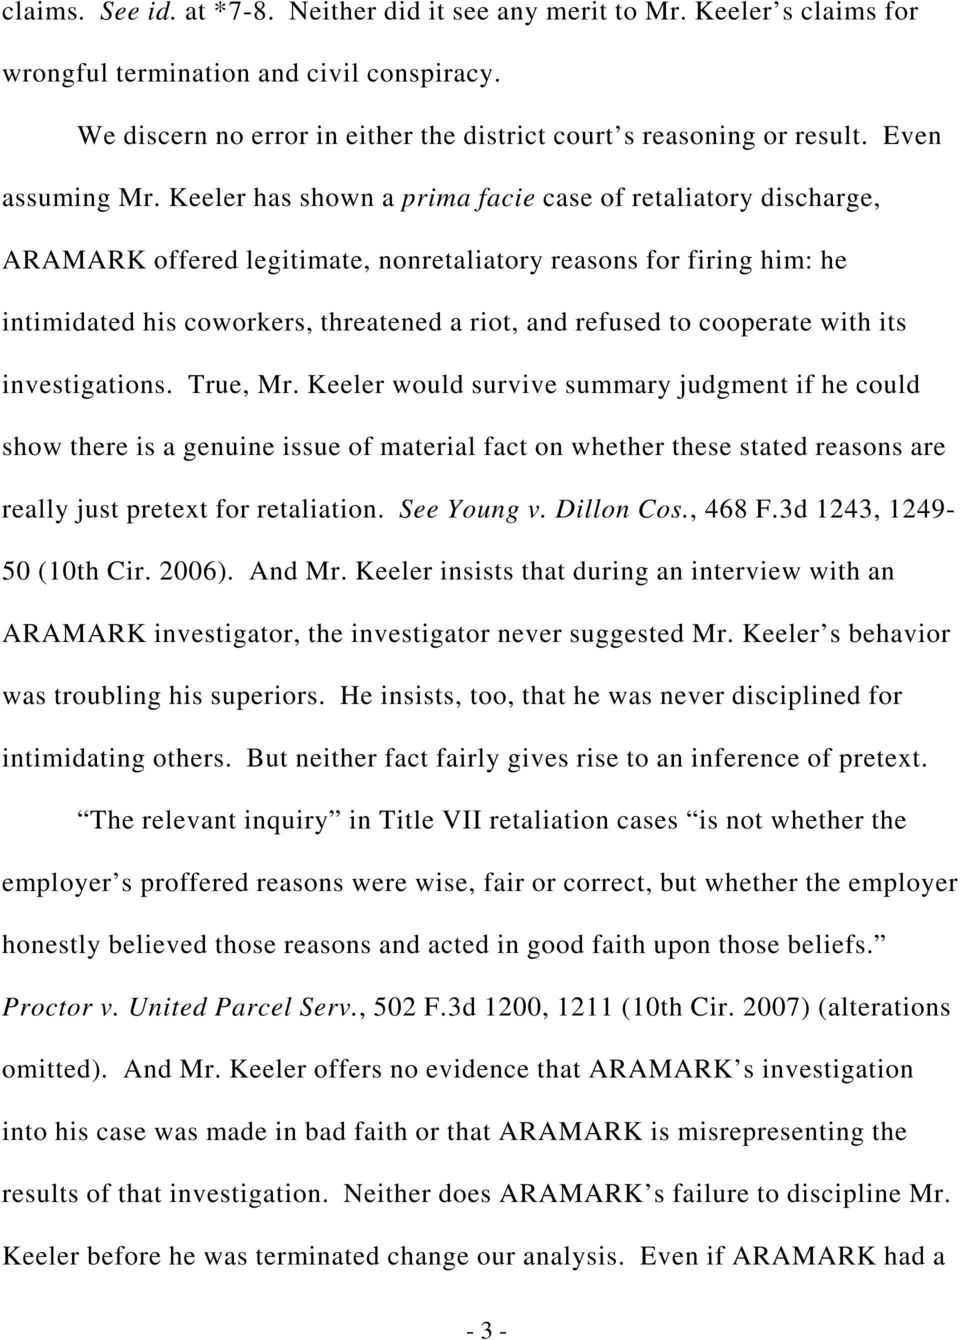 Keeler has shown a prima facie case of retaliatory discharge, ARAMARK offered legitimate, nonretaliatory reasons for firing him: he intimidated his coworkers, threatened a riot, and refused to